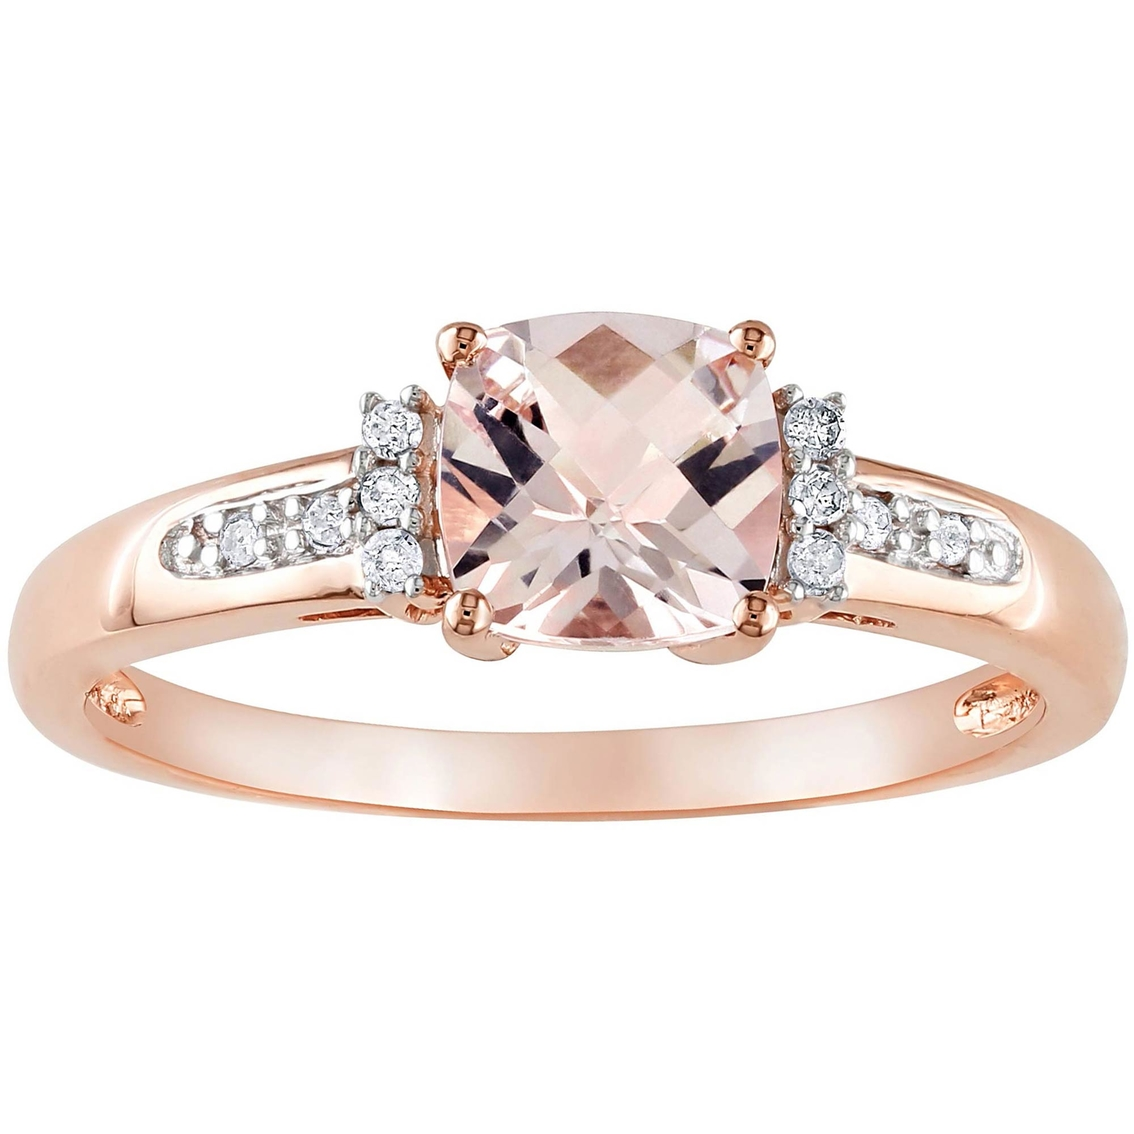 sofia b 10k rose gold morganite ring with diamond accents. Black Bedroom Furniture Sets. Home Design Ideas